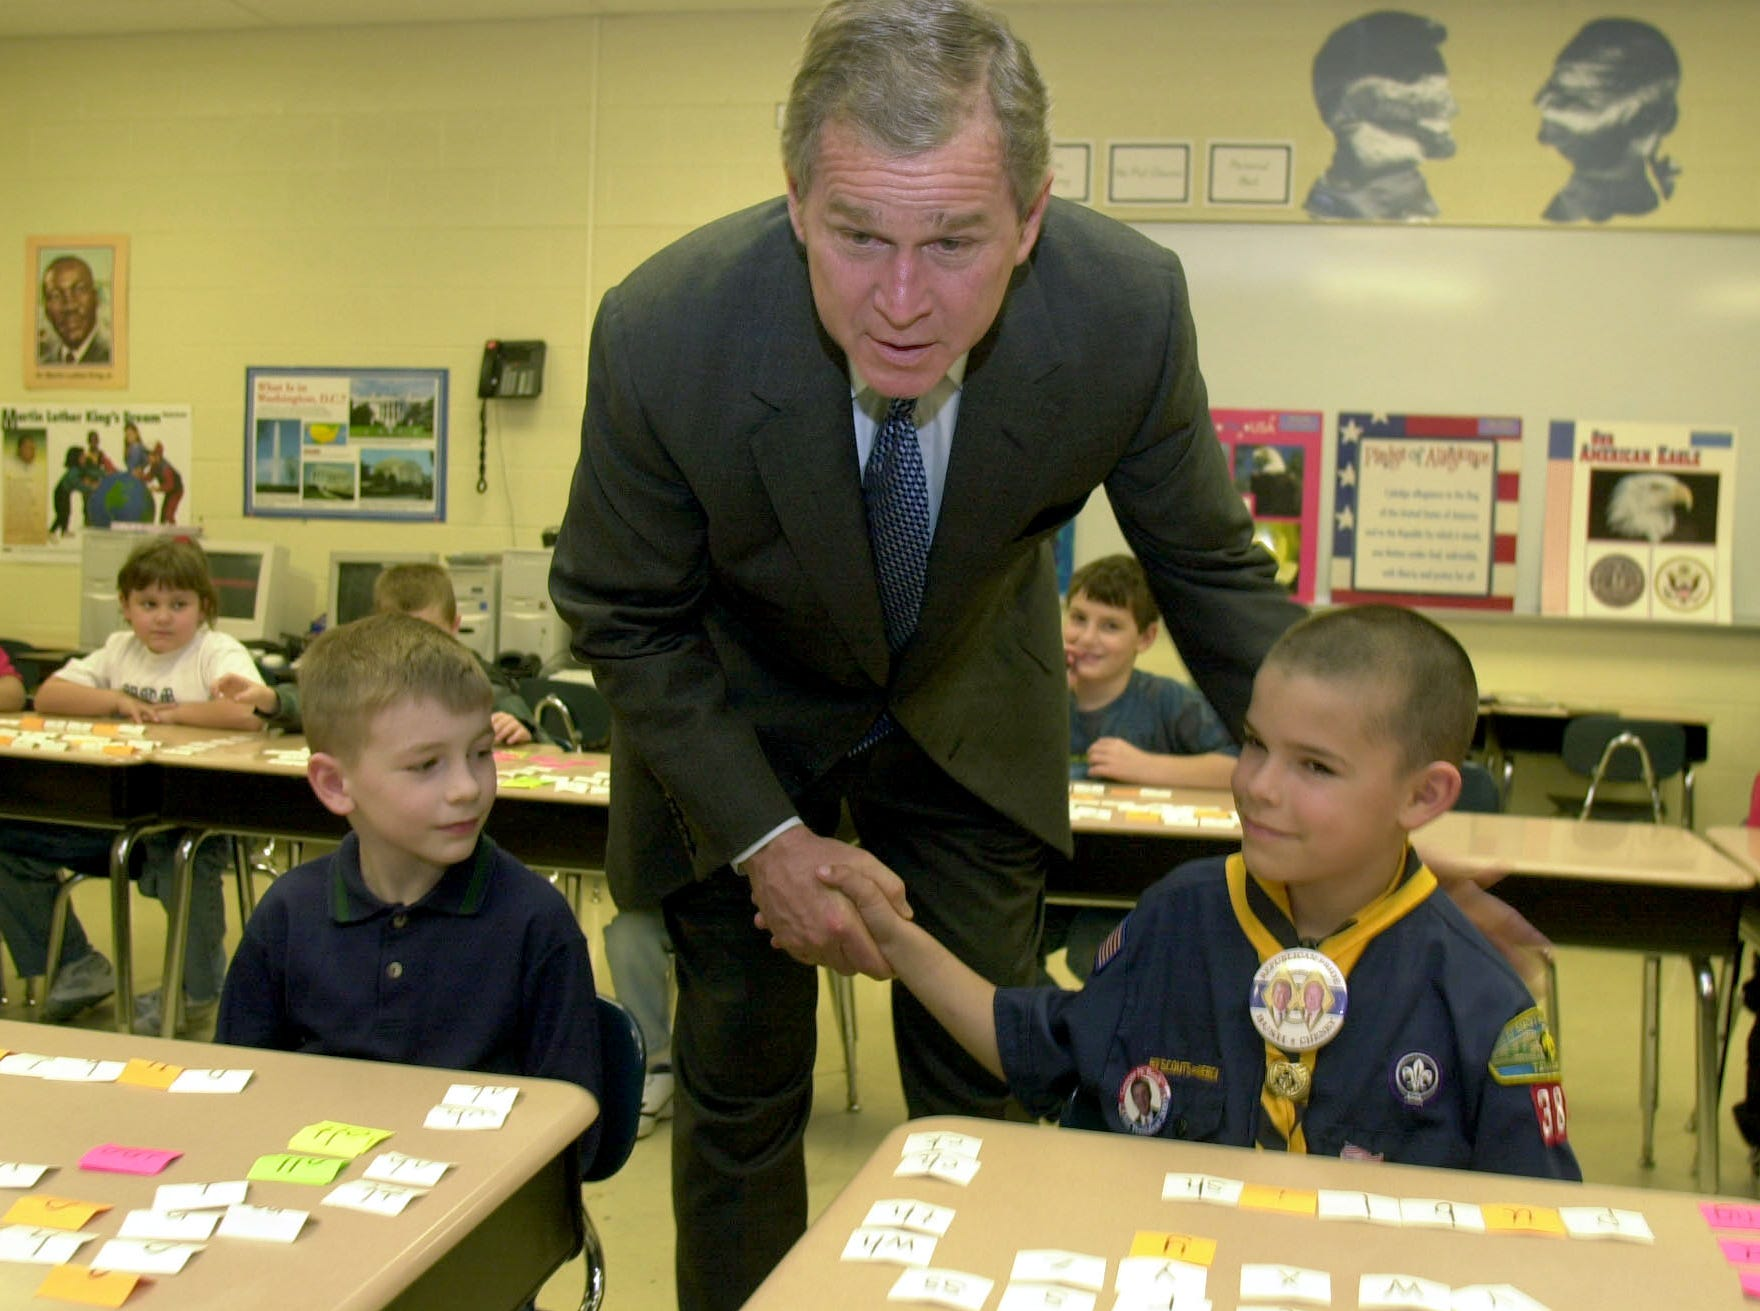 """President George Bush shakes hands with Christopher Overstreet as he tells photographer, """"you know I was a scout."""" President Bush visited Pam Reed's second grade class at Townsend Elementary School Wednesday morning.  To the left of Bush is Bradley Allen."""